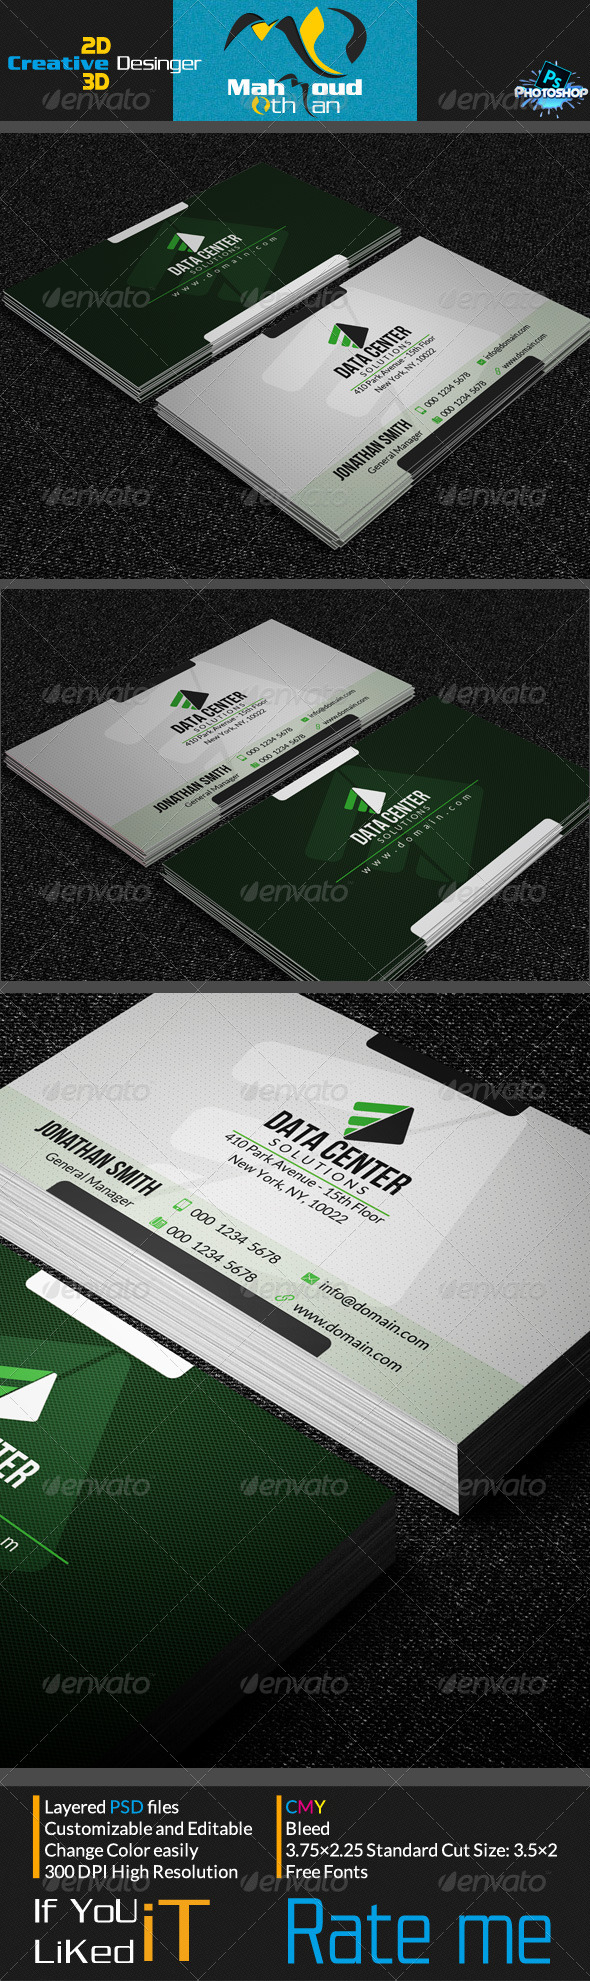 Corportae Business Card V07 - Corporate Business Cards